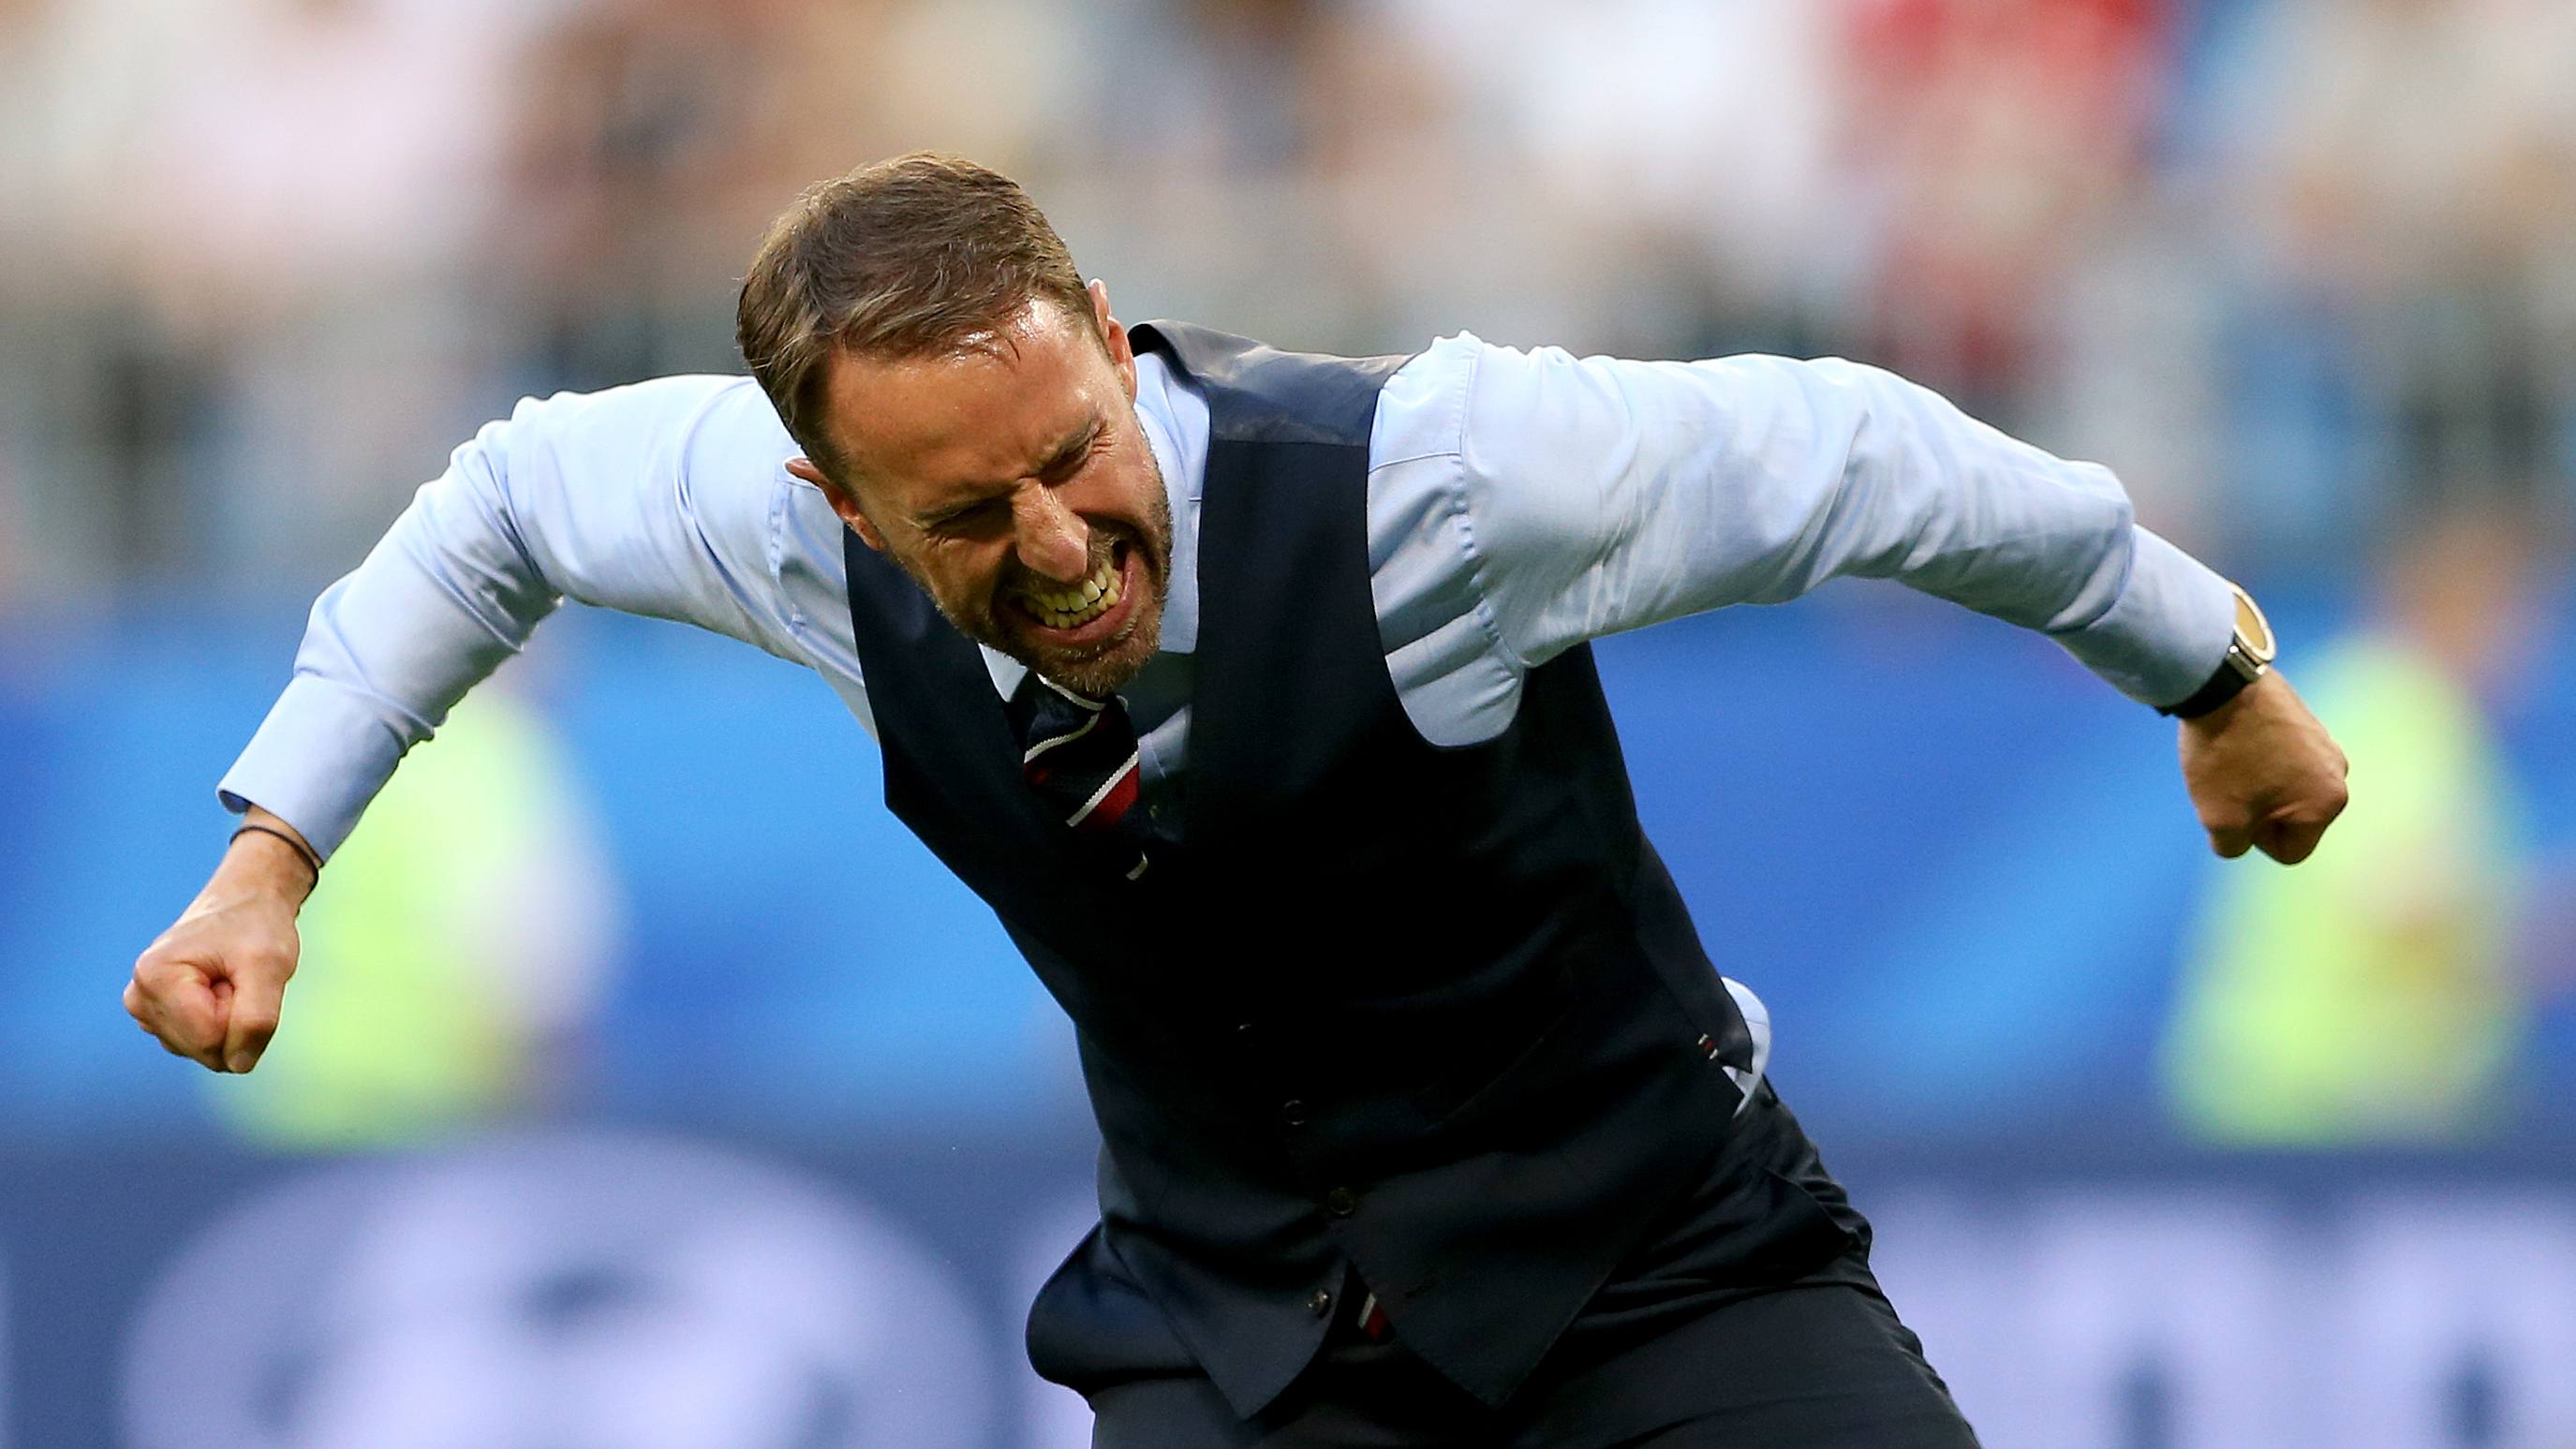 Petition For A Bank Holiday If England Win The World Cup Passes 165,000 signatures